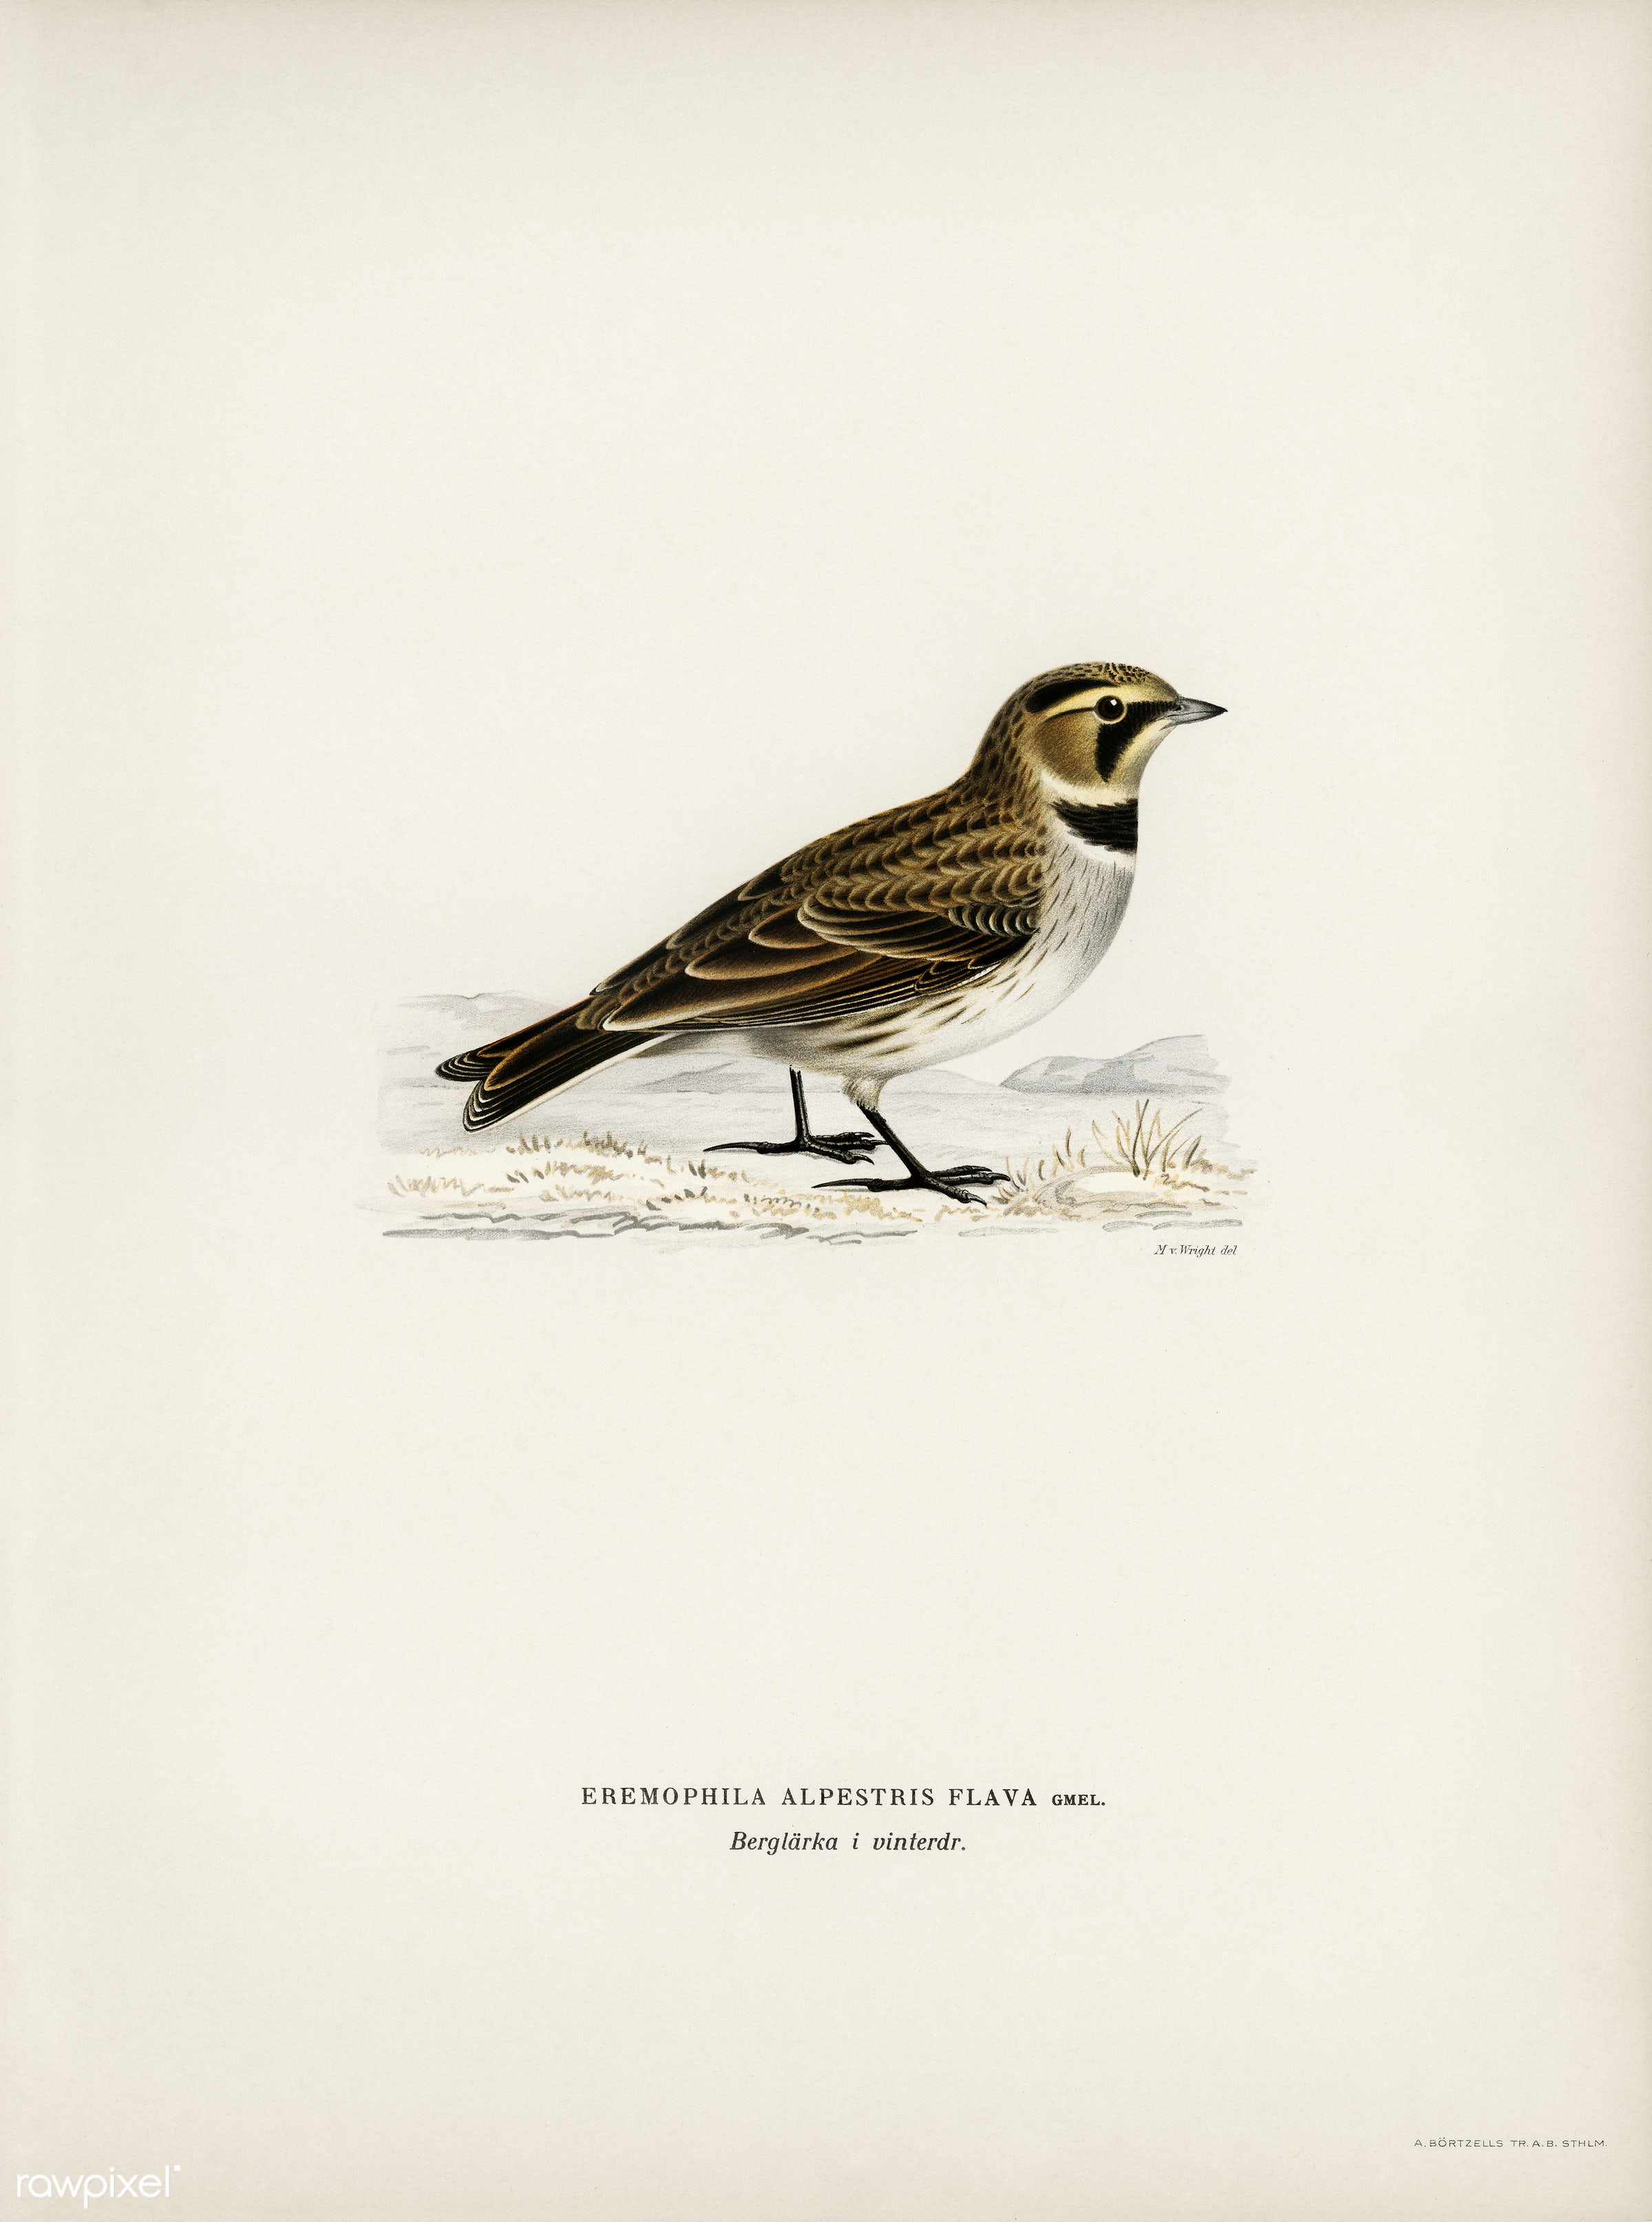 Horned lark (Eremophila alpestris flava) illustrated by the von Wright brothers. Digitally enhanced from our own 1929 folio...